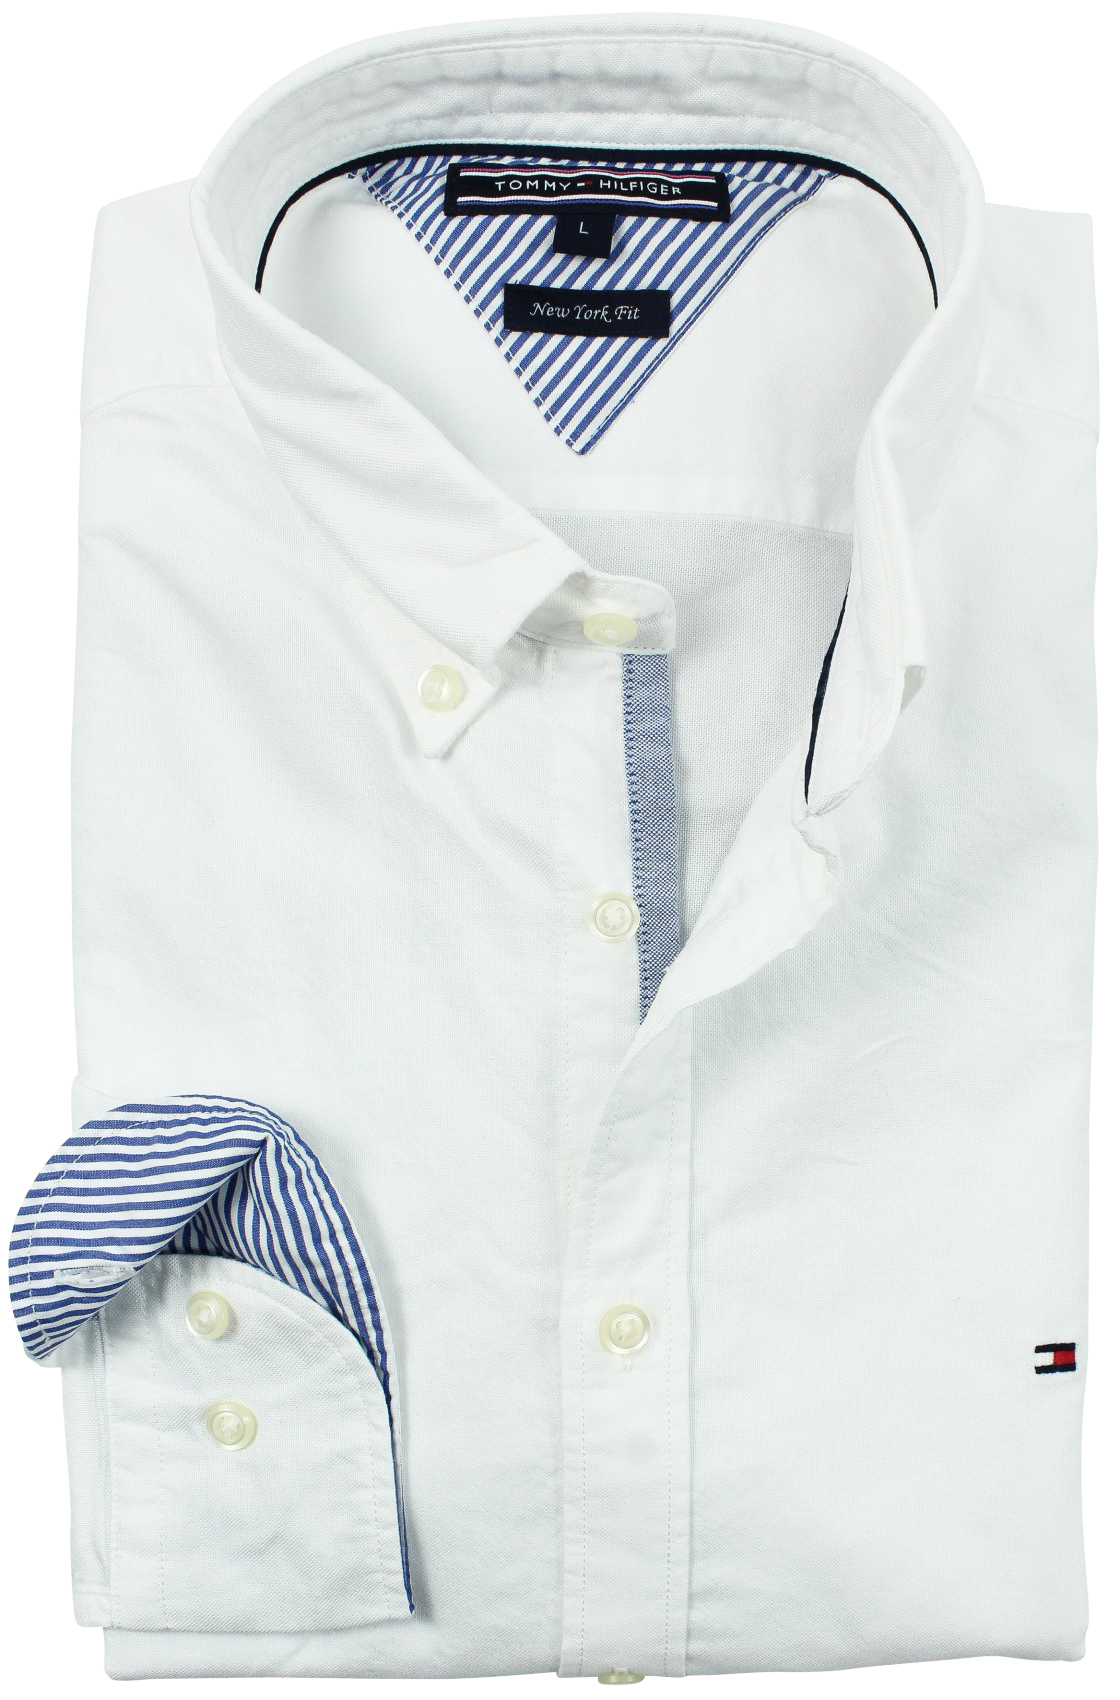 SALE Tommy Hilfiger overhemd wit blue stripe detail